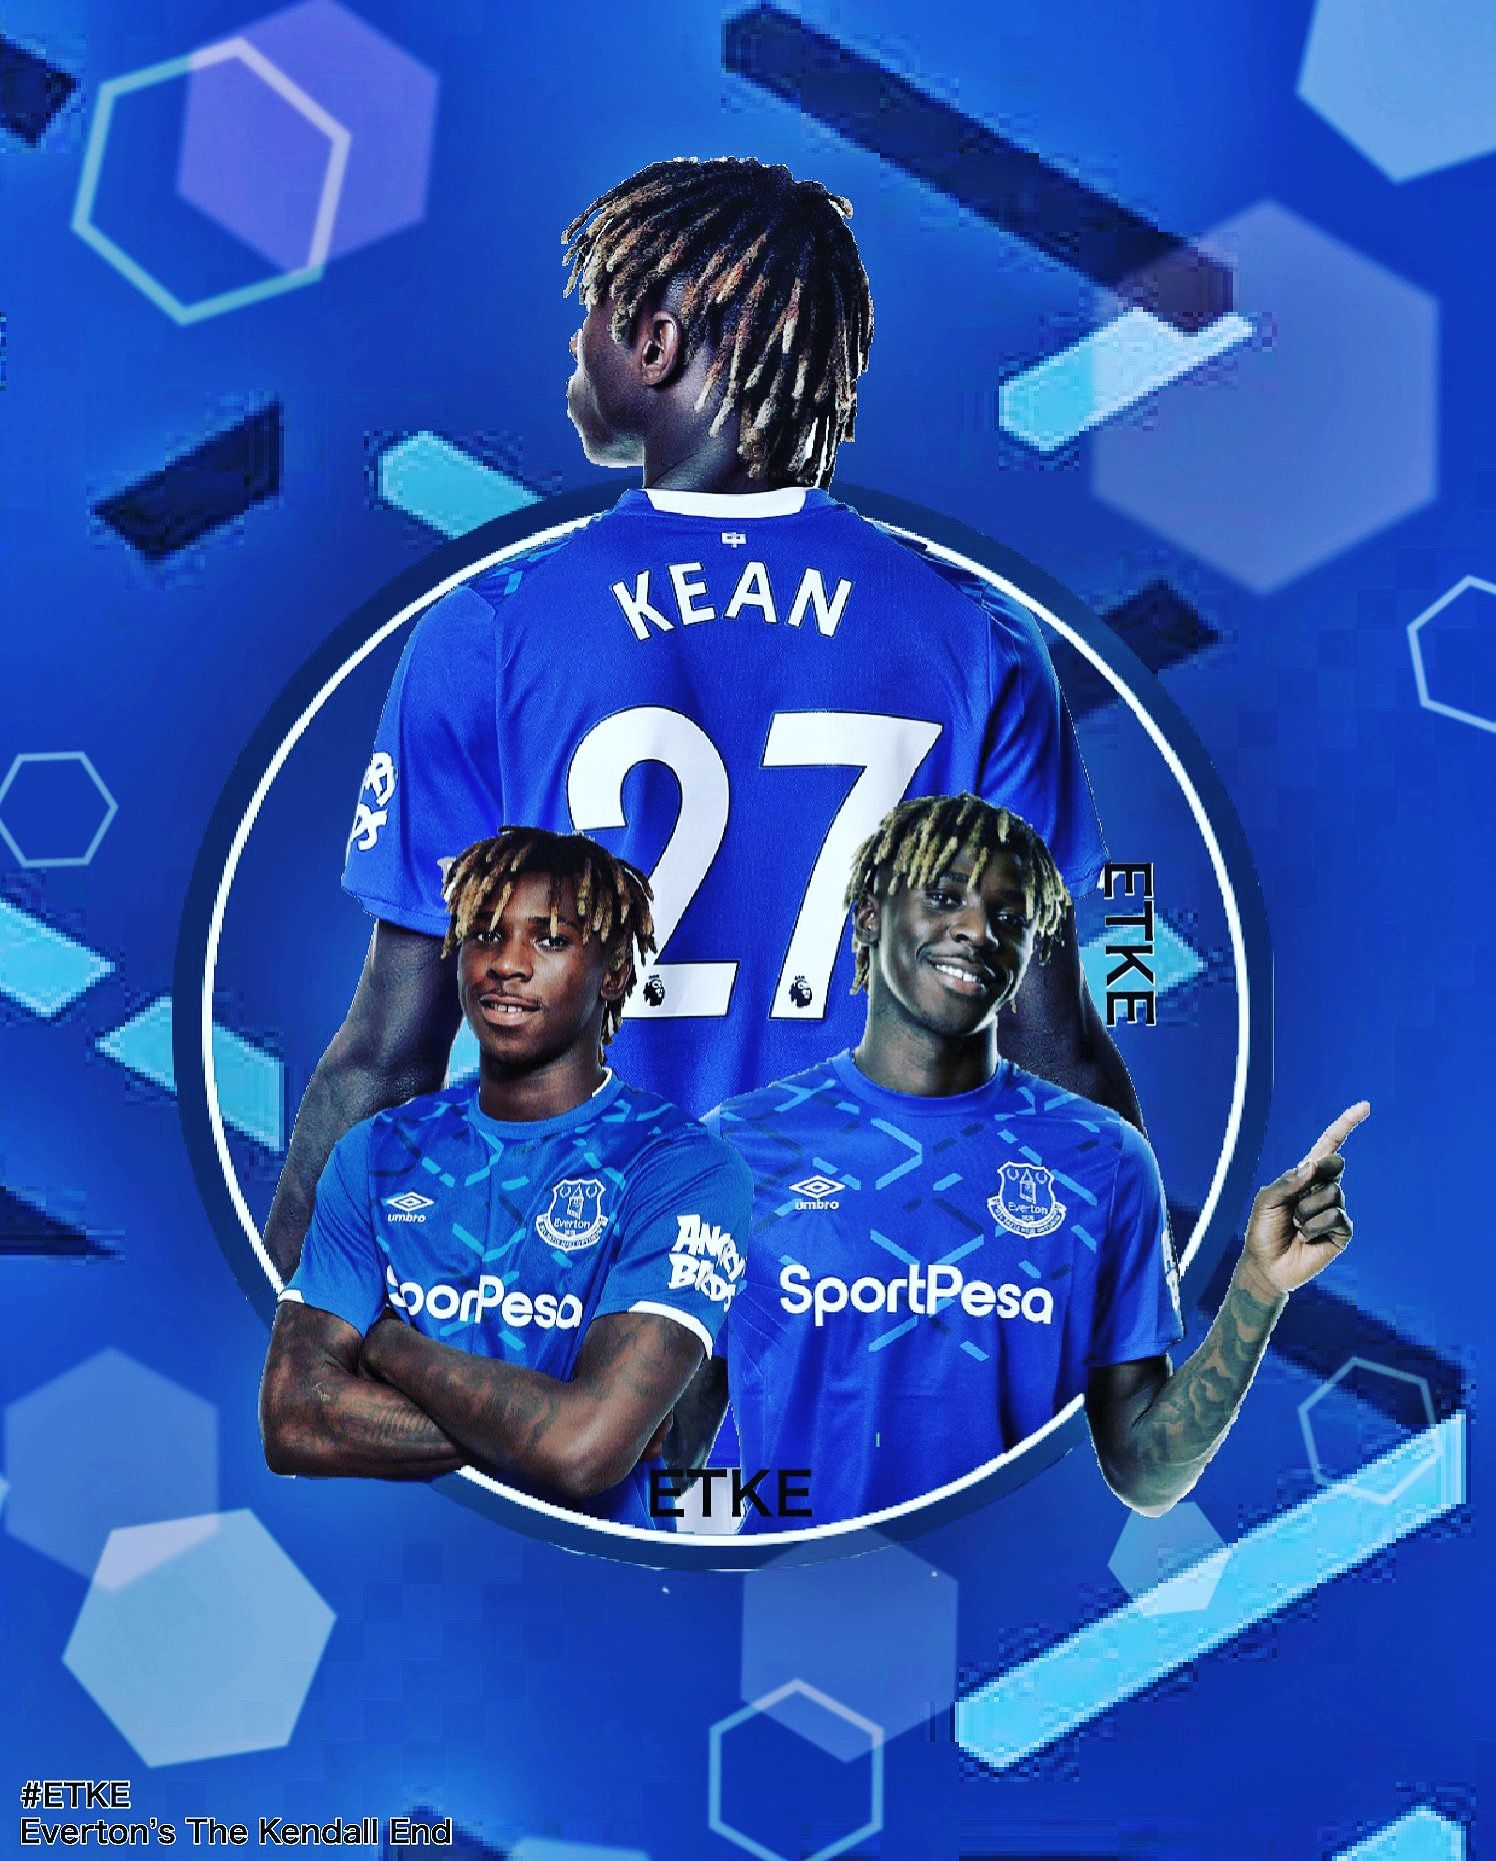 Moise Kean Everton Everton Football Everton Football Club Everton